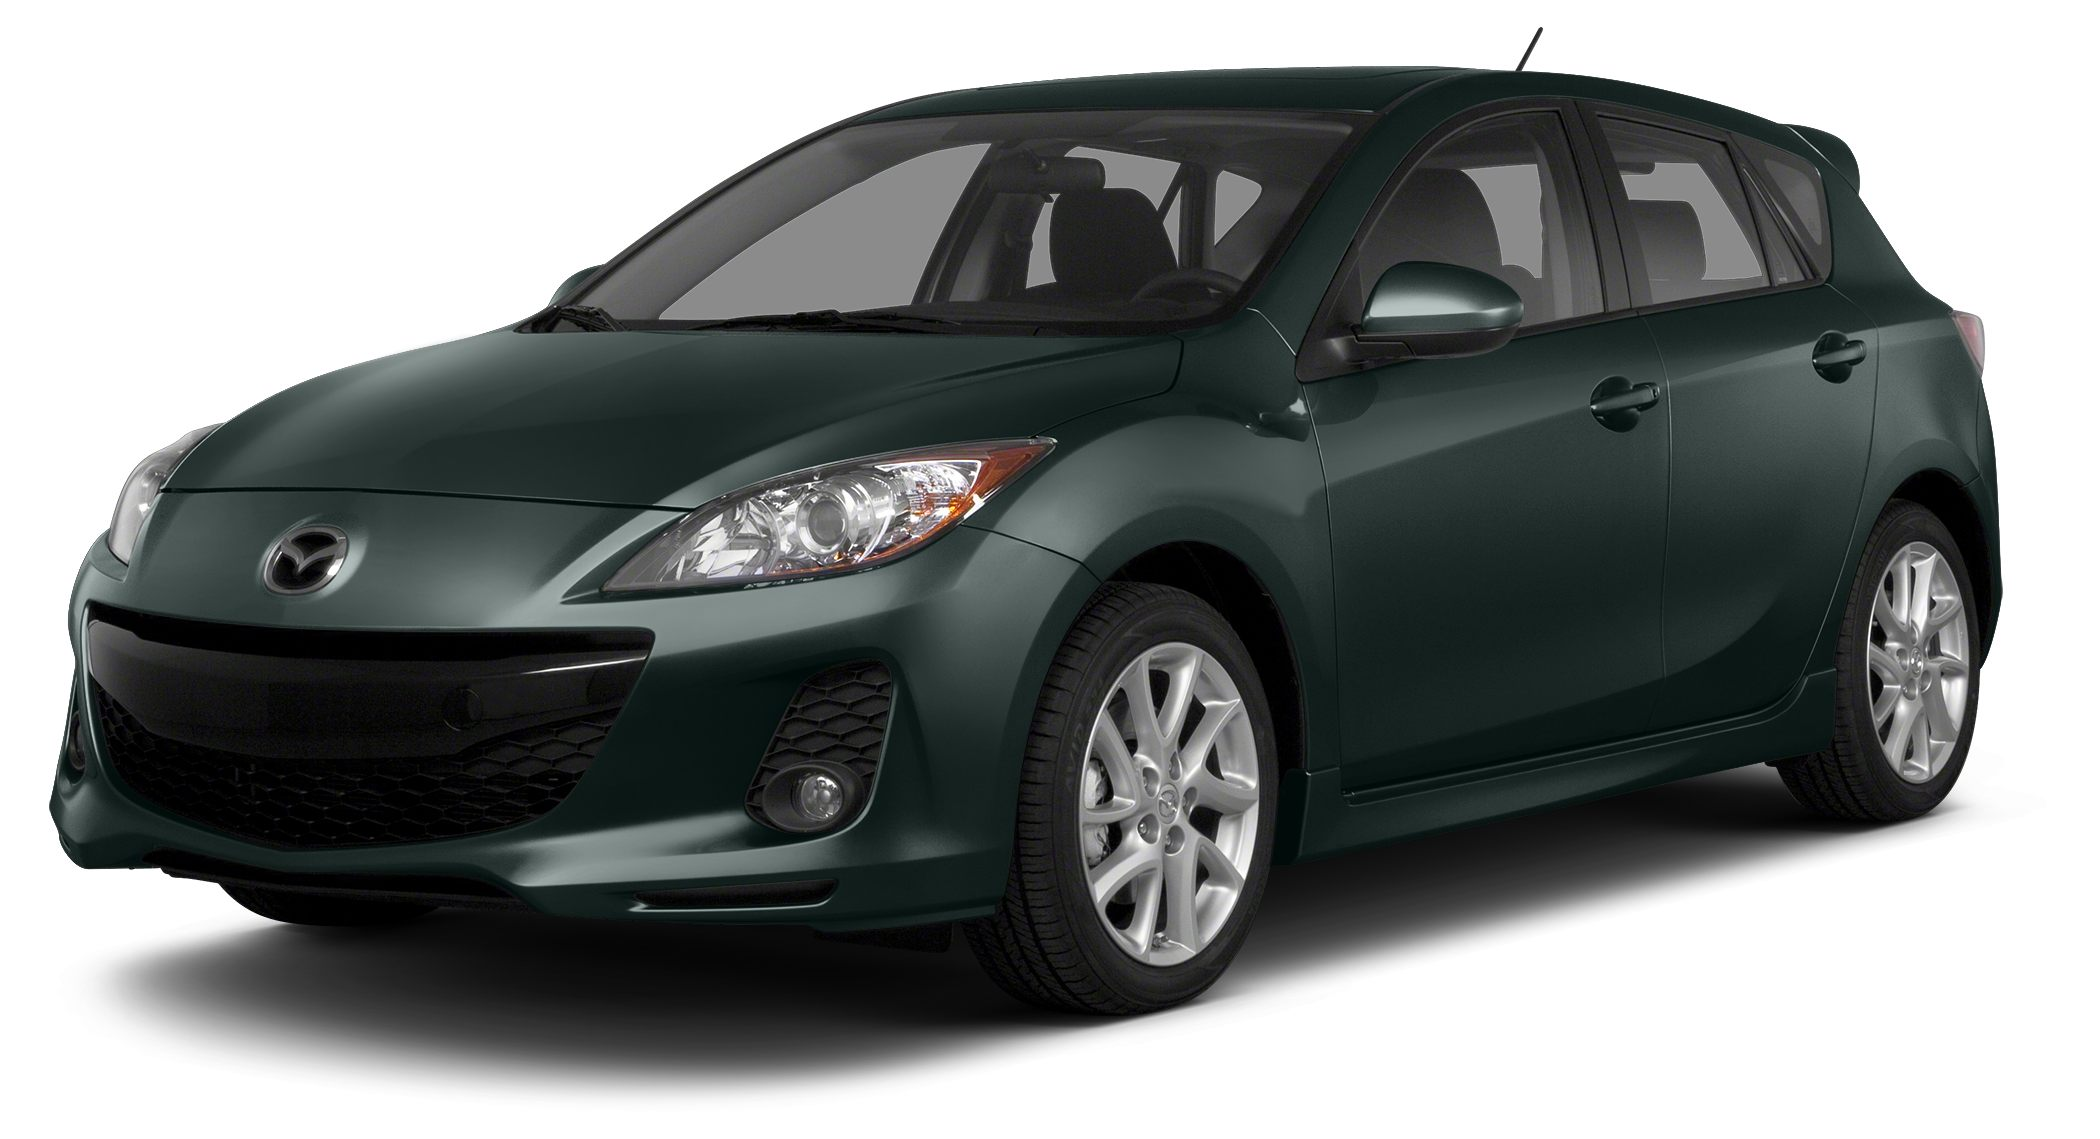 2013 Mazda MAZDA3 i Touring TOURING MAZDA 3 VERY CLEAN AFFORDABLE STYLISH SPORTY SHOWS GREAT